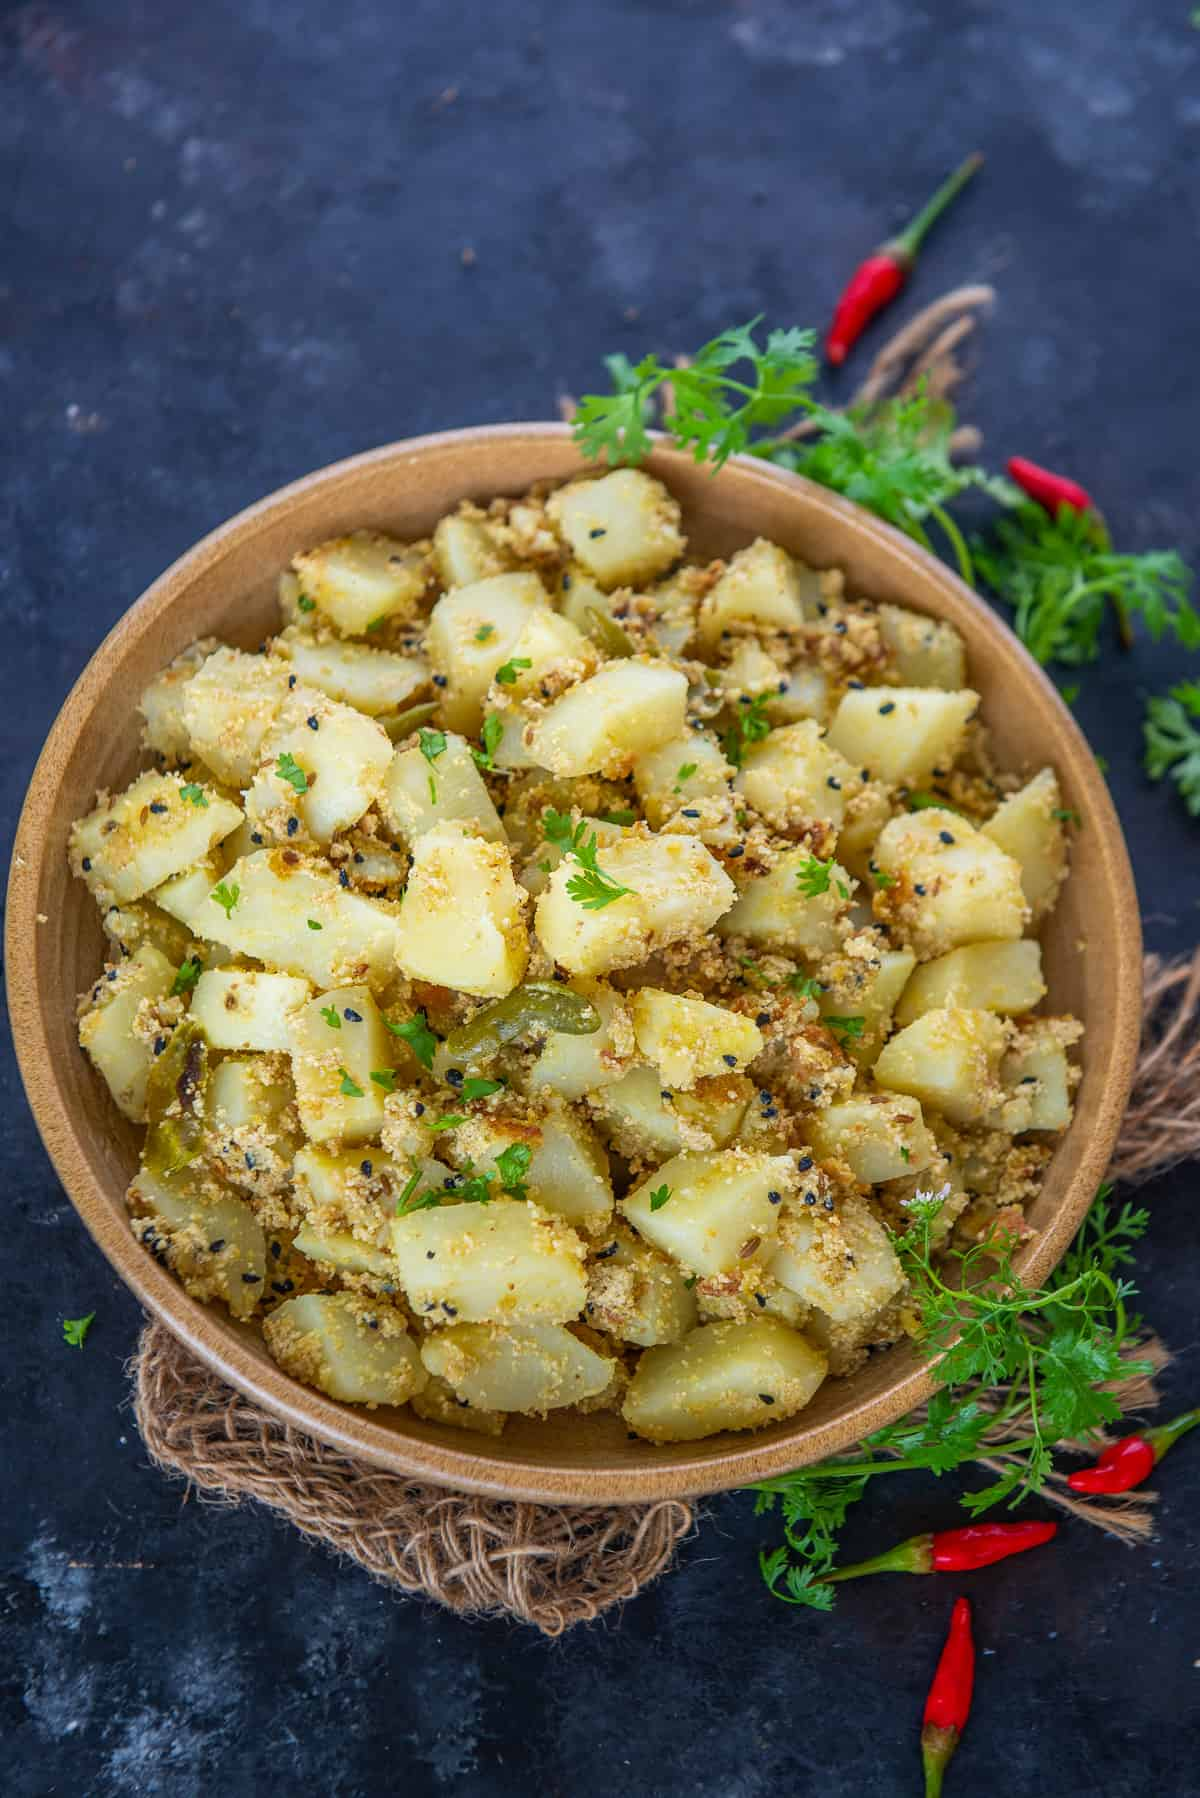 Bengali aloo posto served in a bowl.